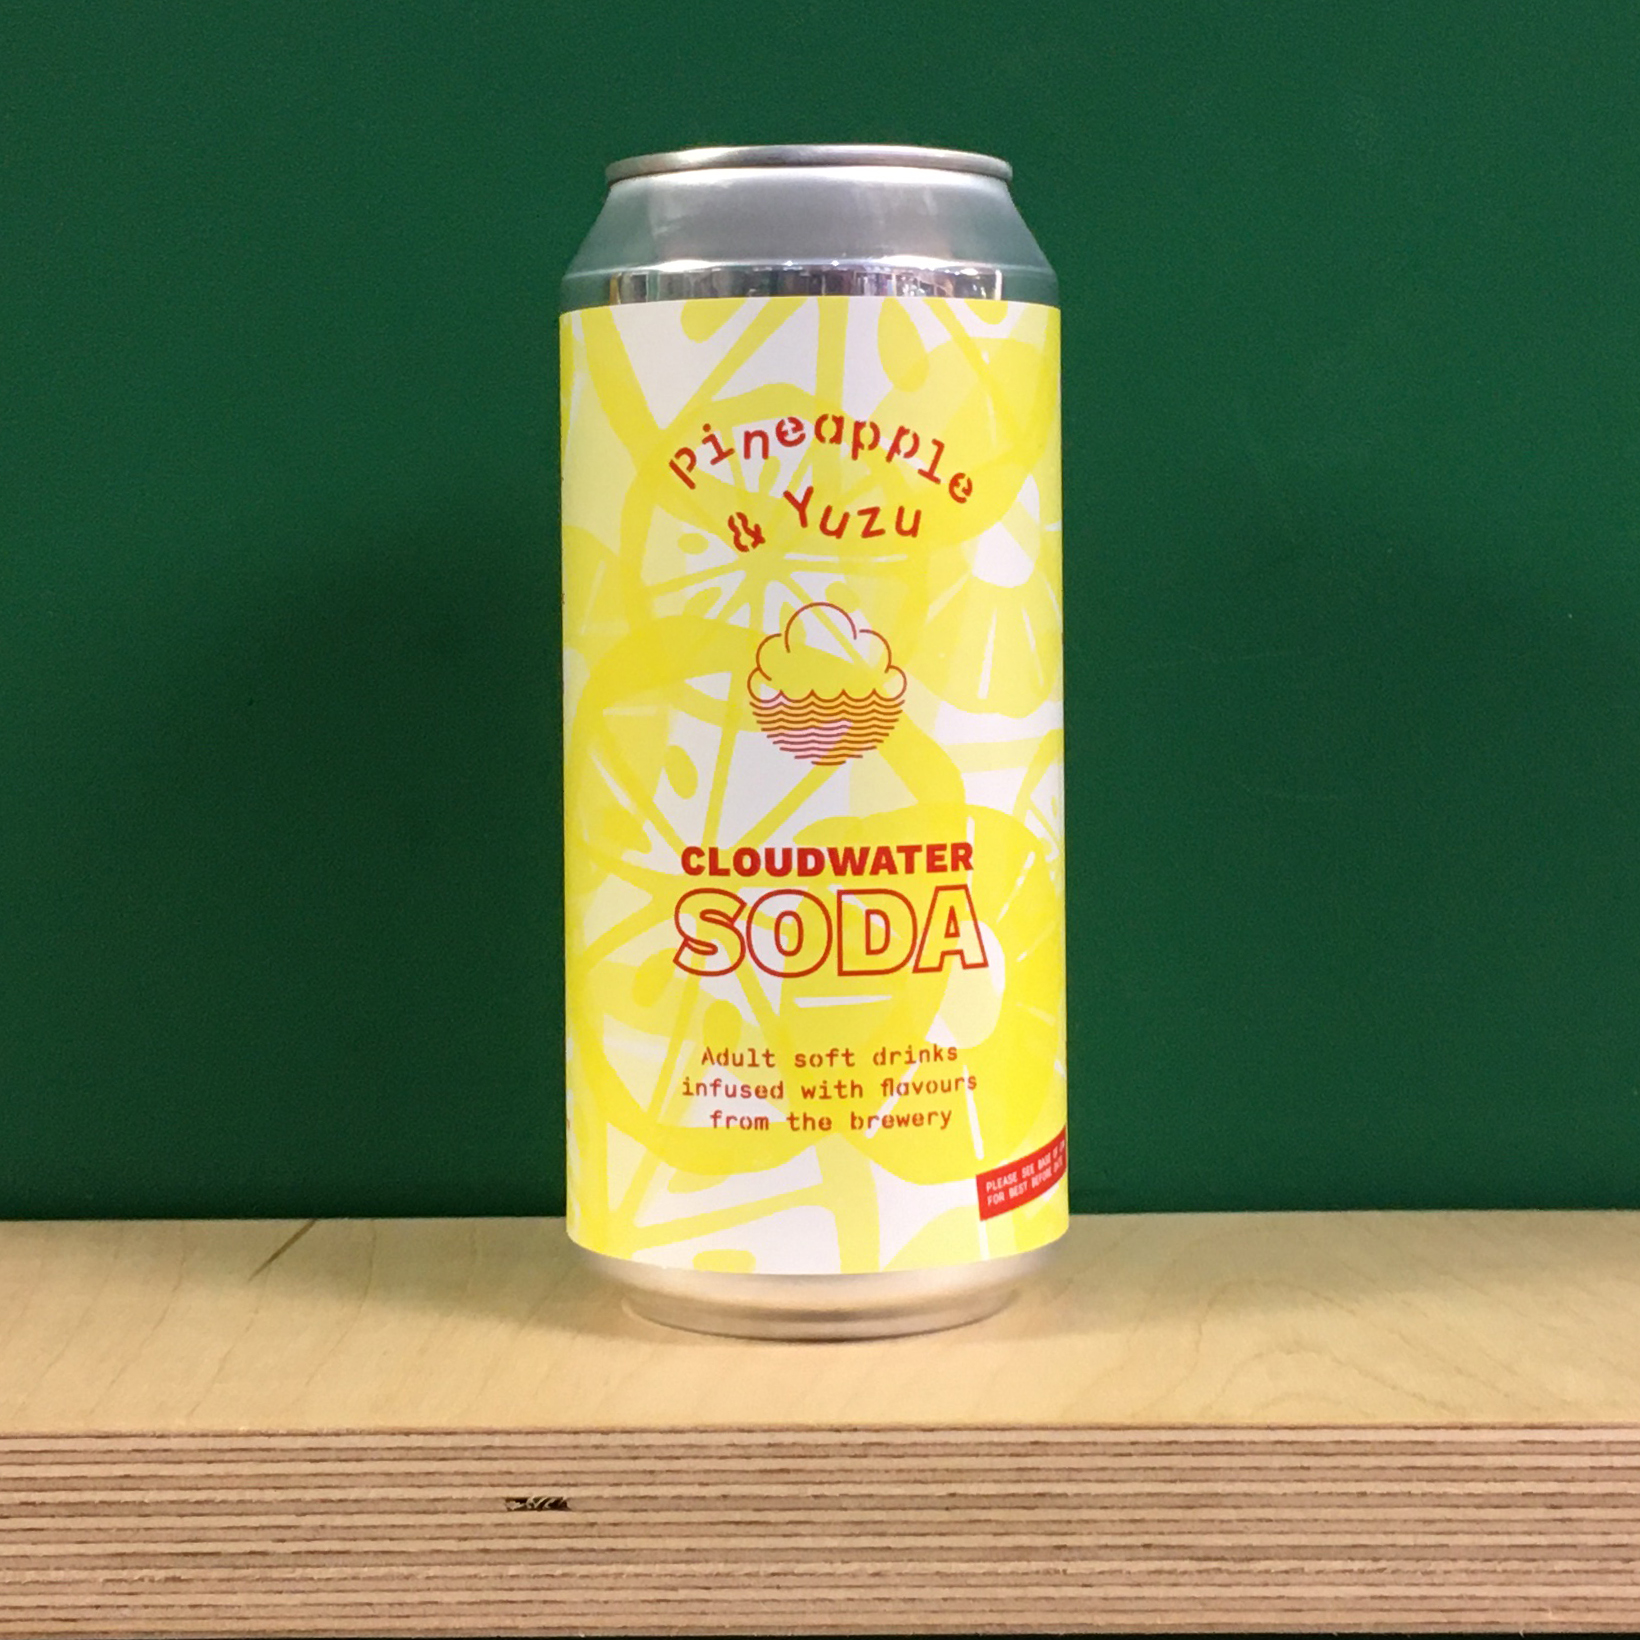 Cloudwater Soda Pineapple & Yuzu